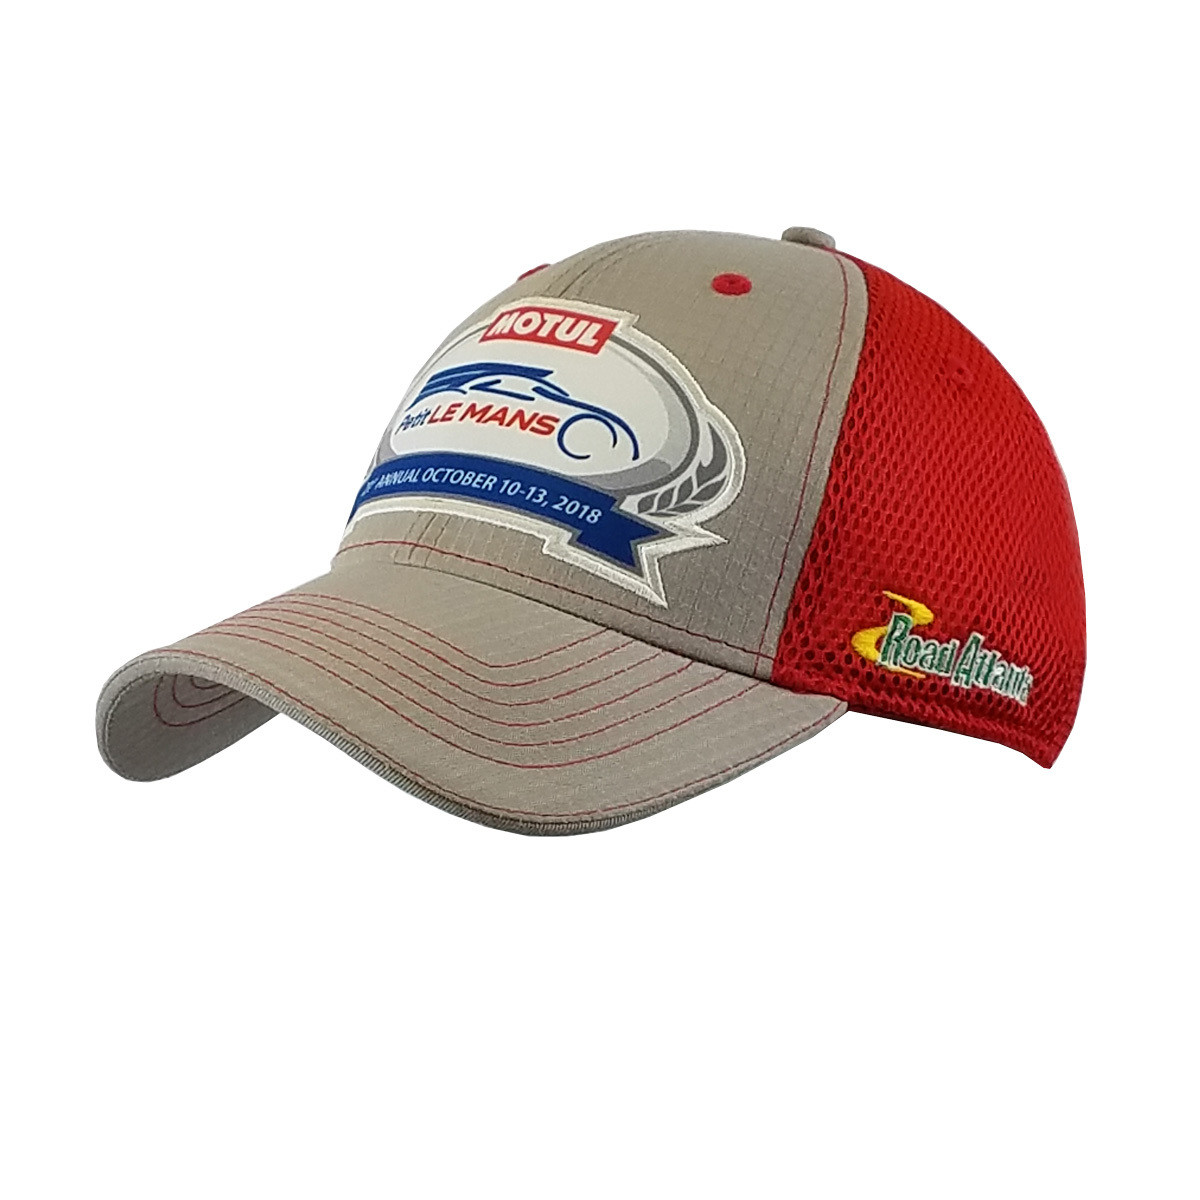 2018 MPLM Event Hat-  Red